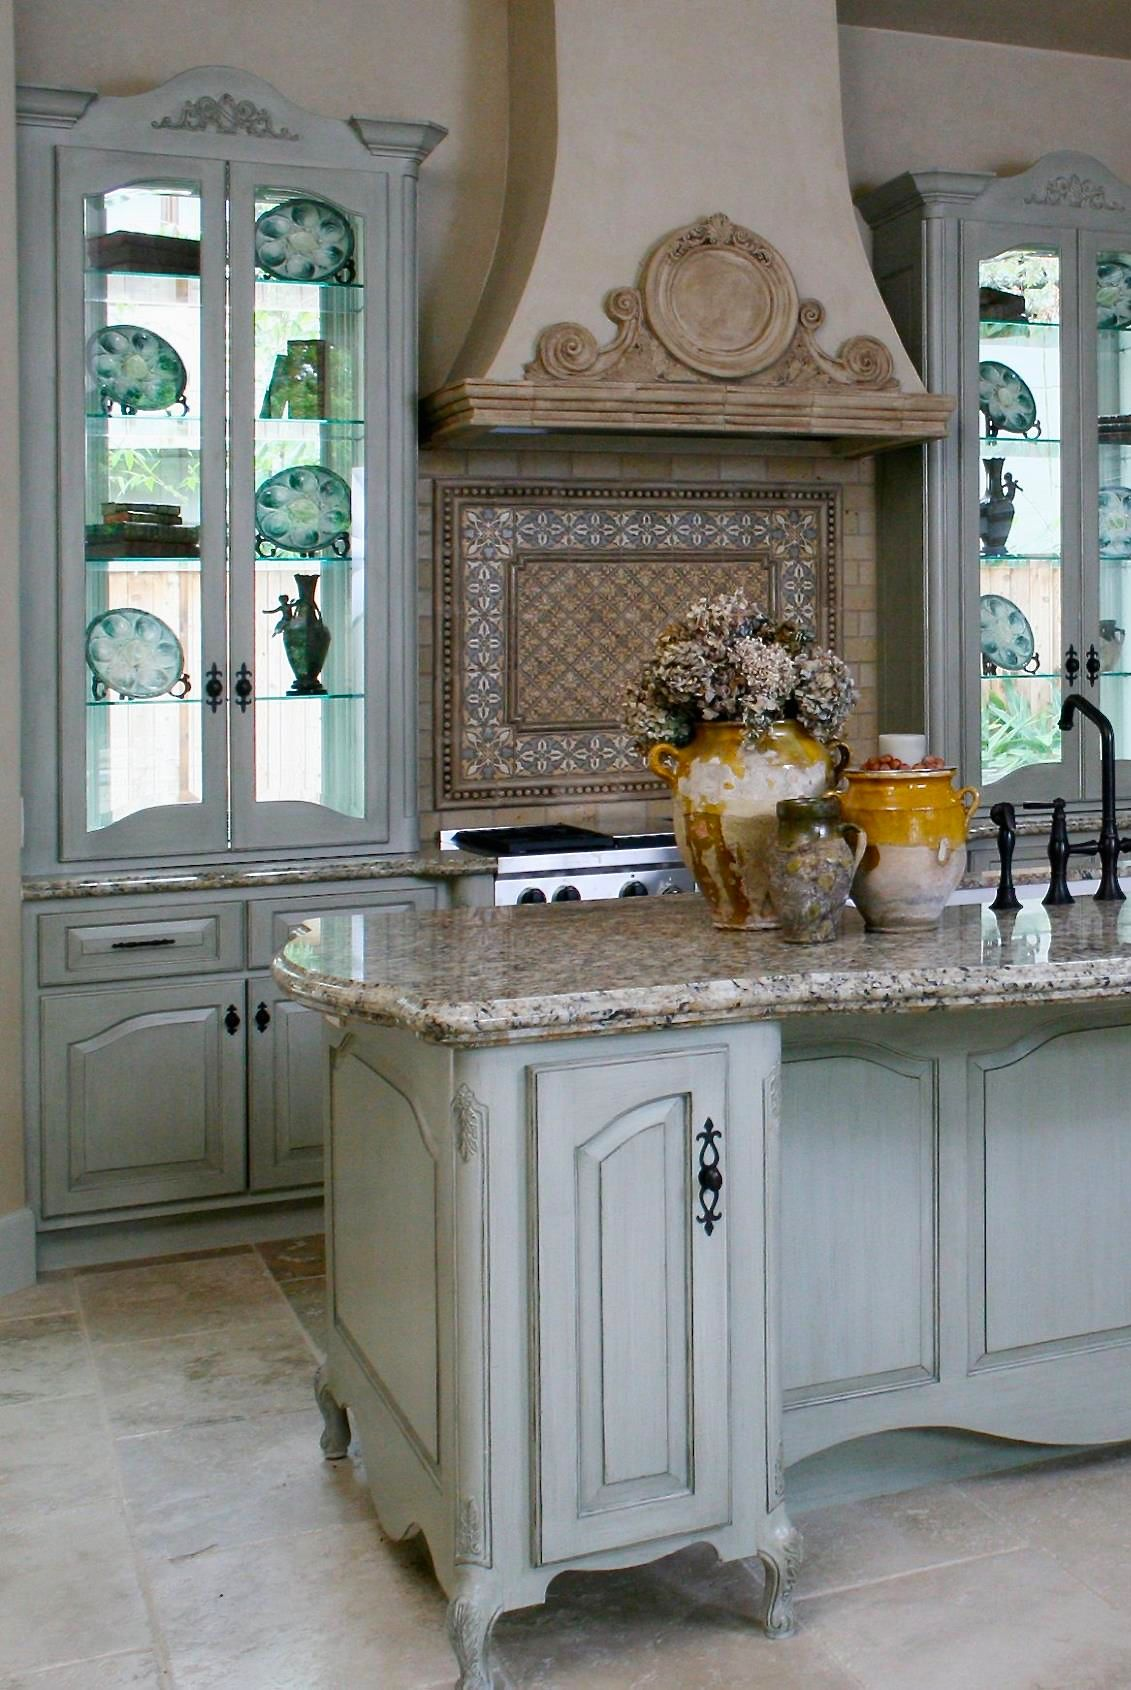 Tastes And Flares Does Any Reach You Now Kitchen Styles